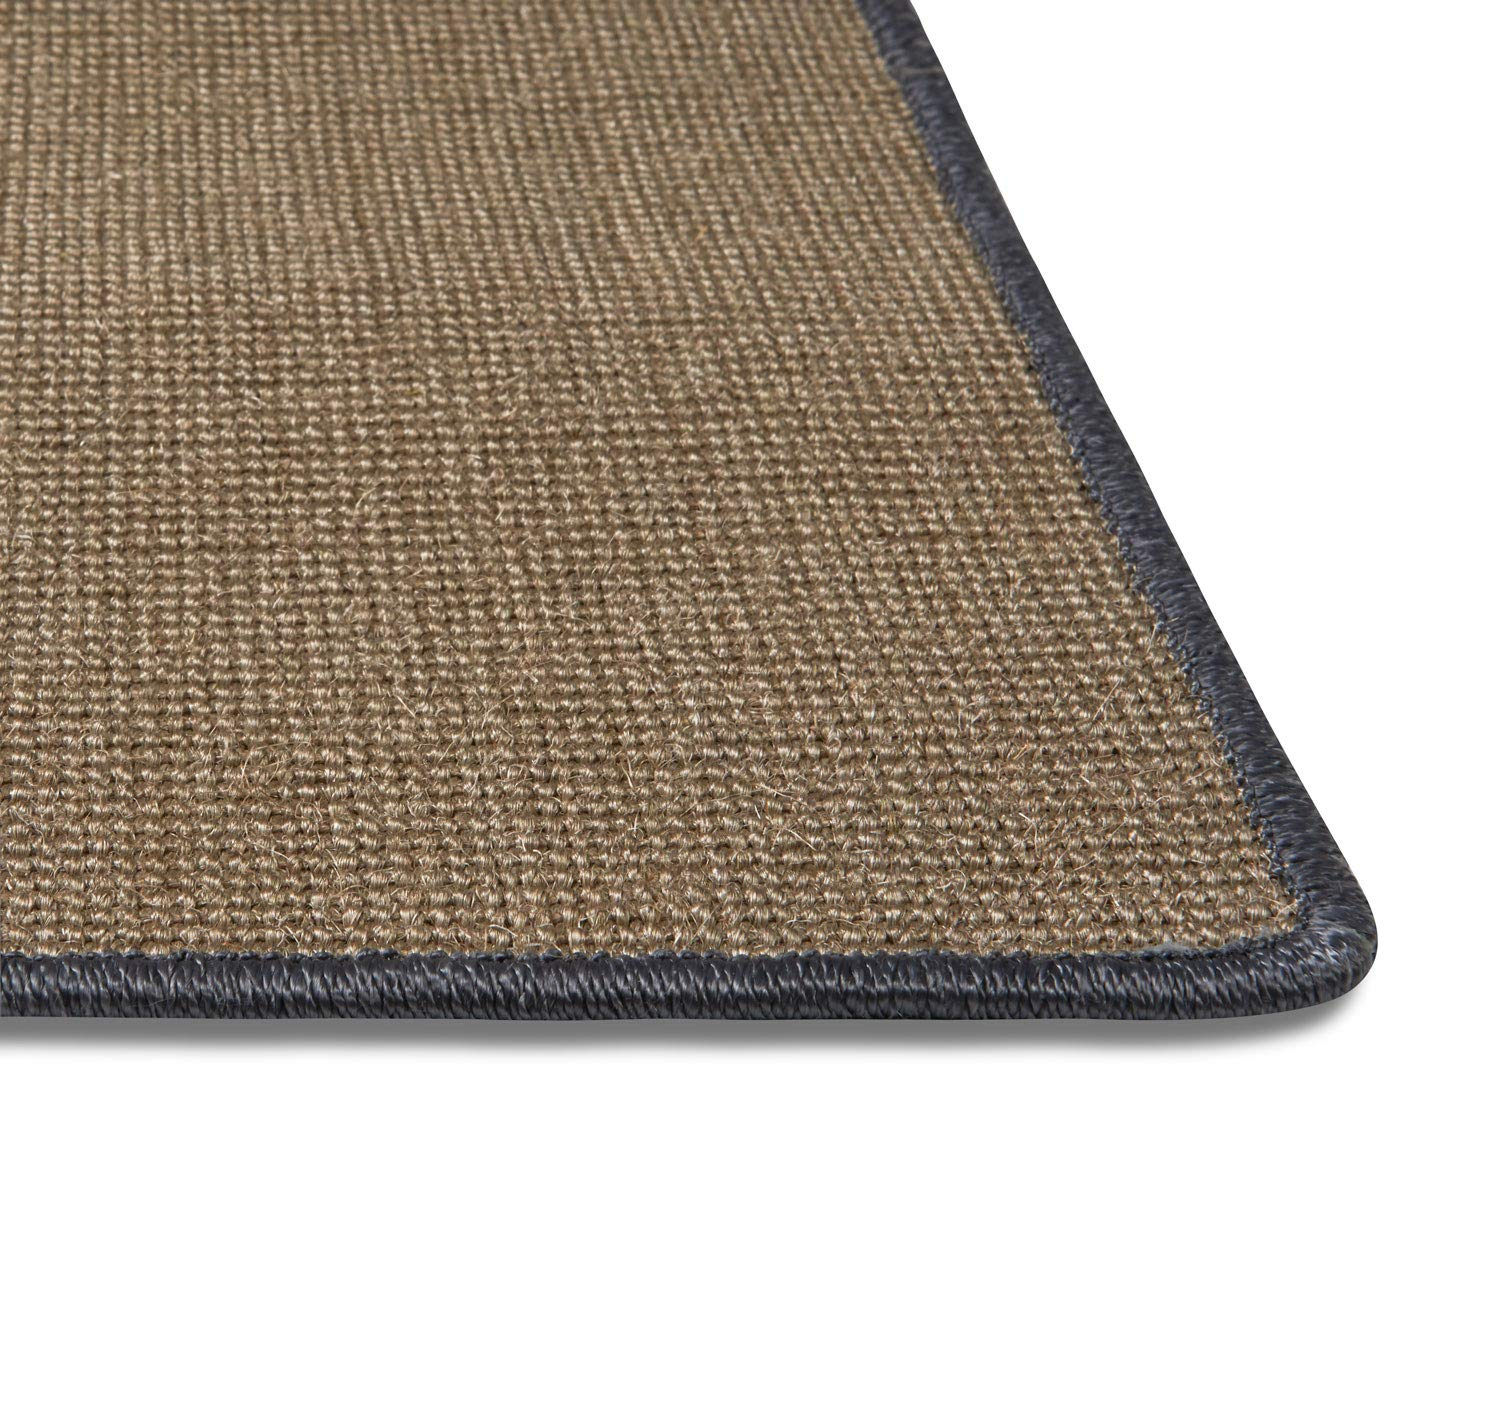 Natural Sisal Cat Scratching Mat Protect Carpets and Sofas LsaiFater Cat Scratching Mat 11.8x14.9 inch, Grey